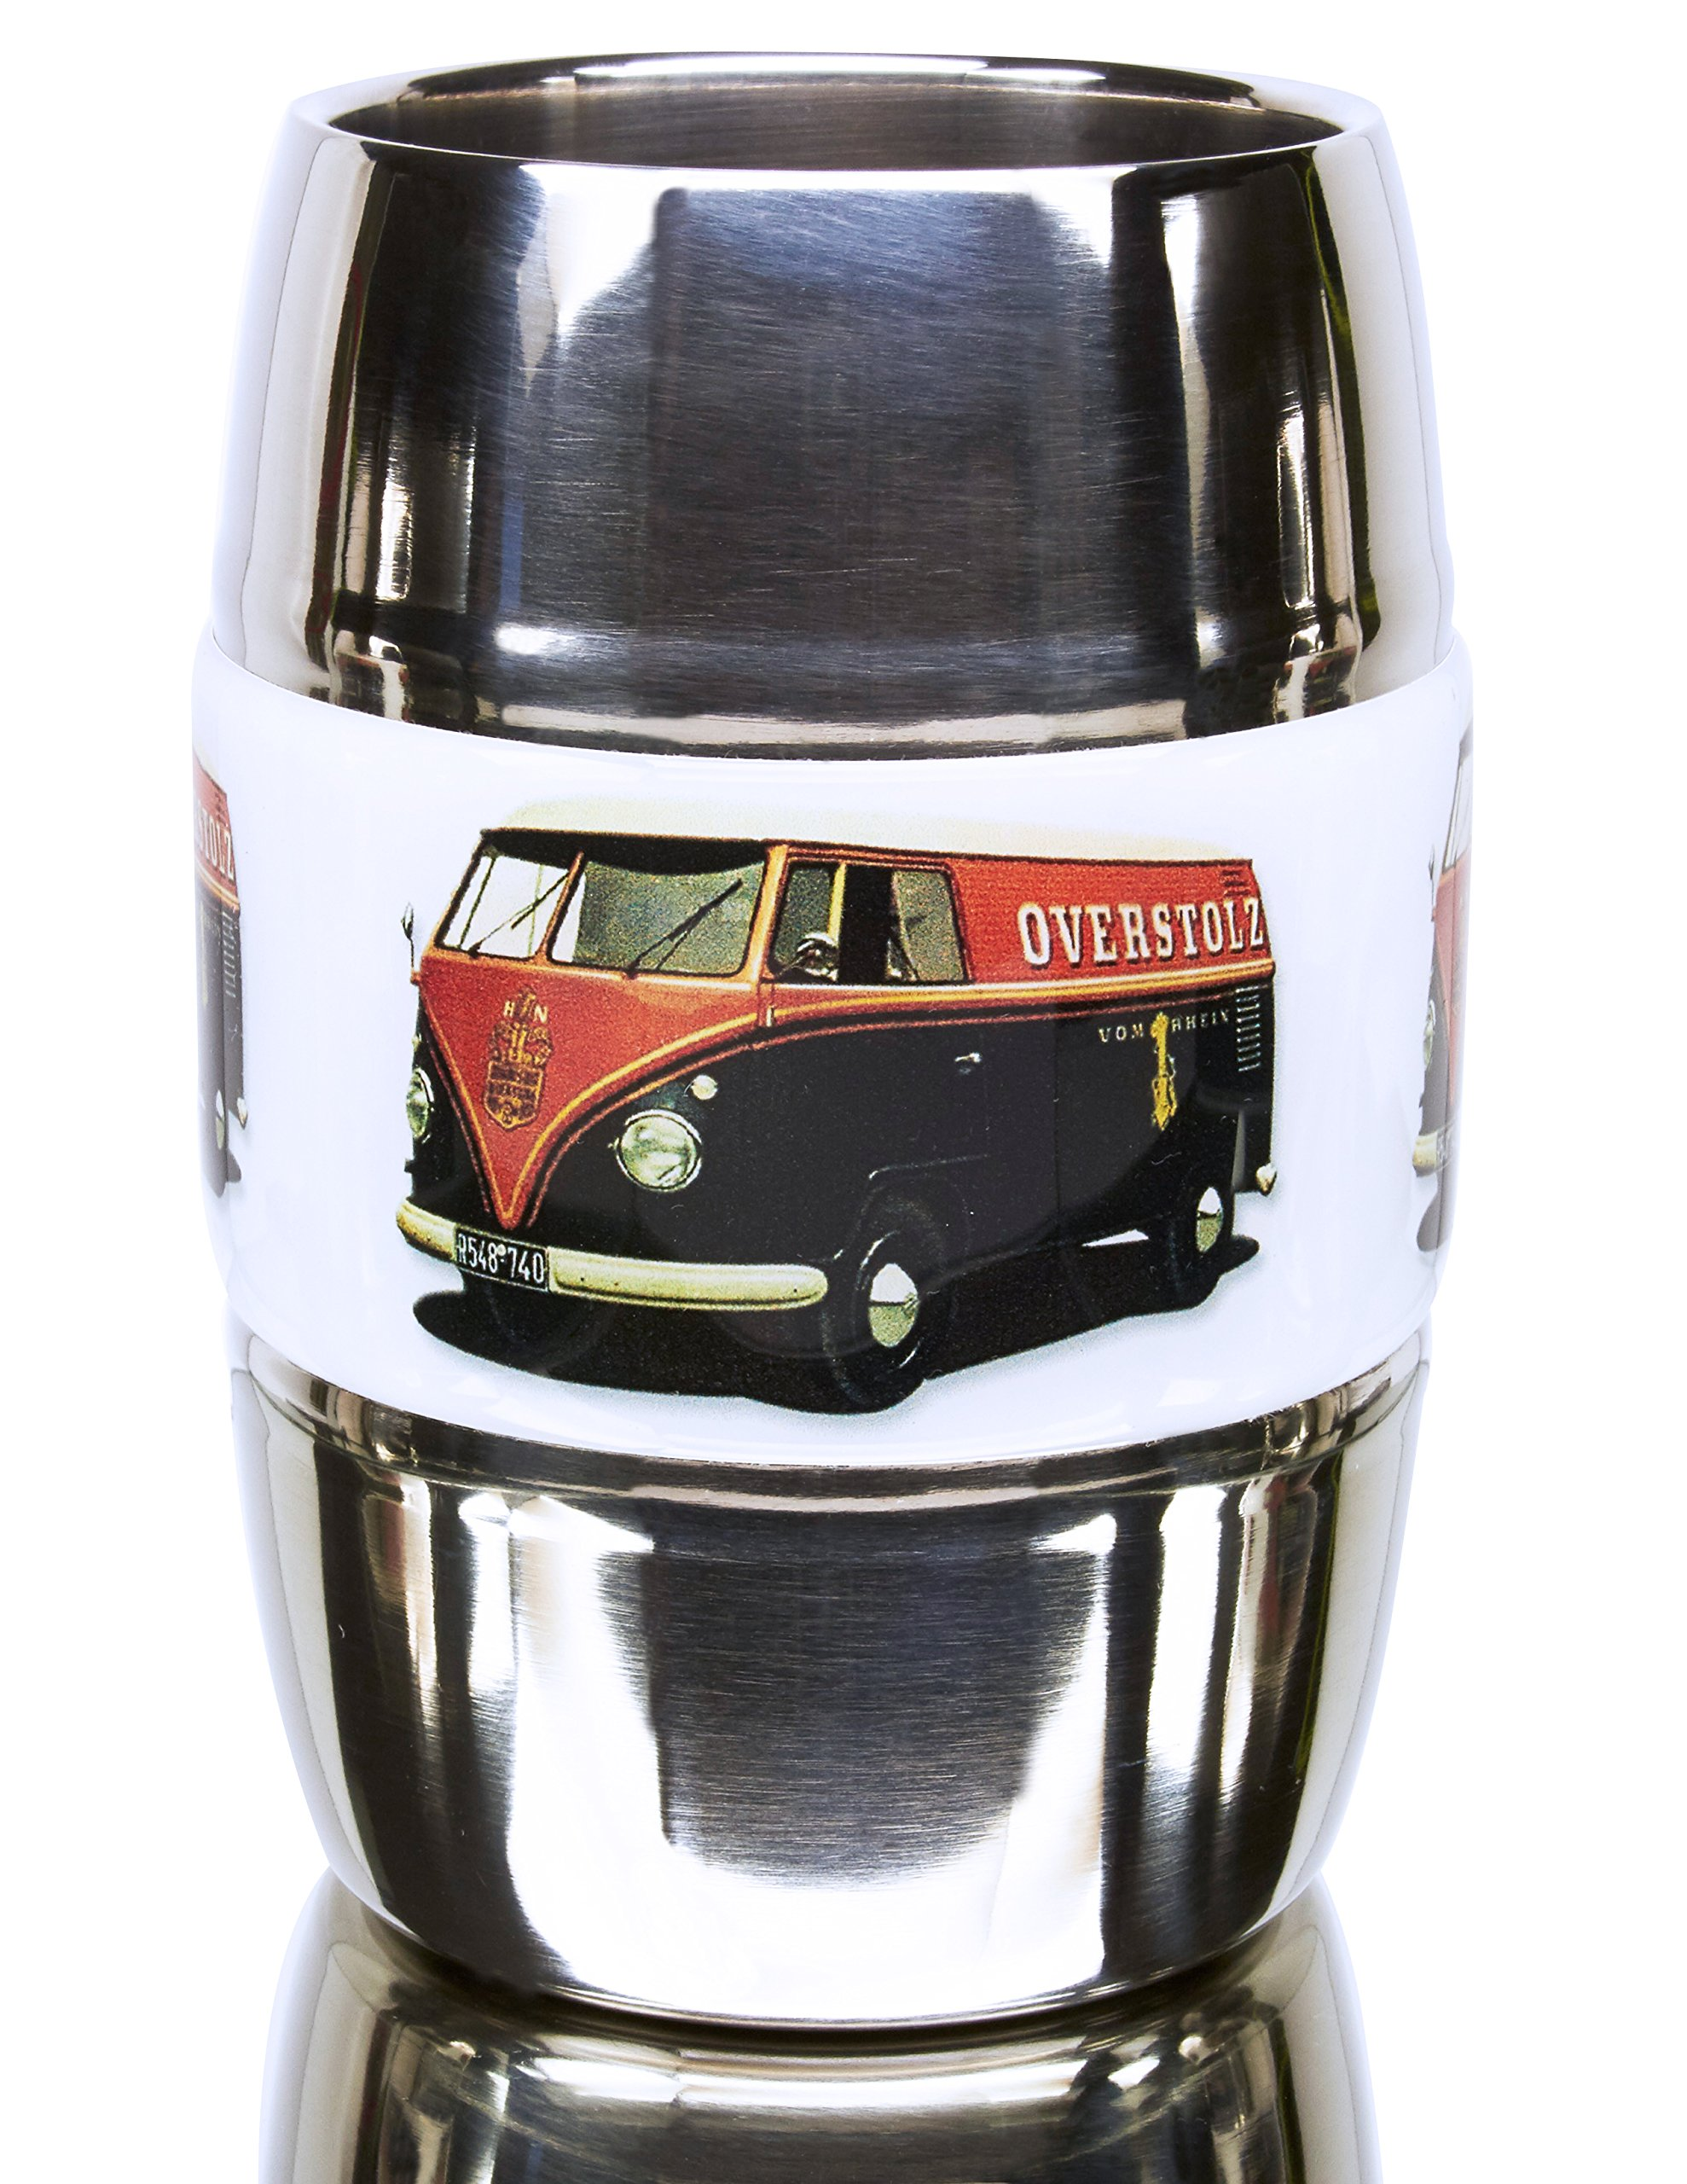 12 Ounce Camping and Travel Mug. Grip Graphic- Vintage VW Bus Orange. Double Wall Premium Stainless. No Sweat. Keeps Drinks Ice-Cold, Coffee Pipping-Hot. Fits Standard Car Holders. Easy to Clean.